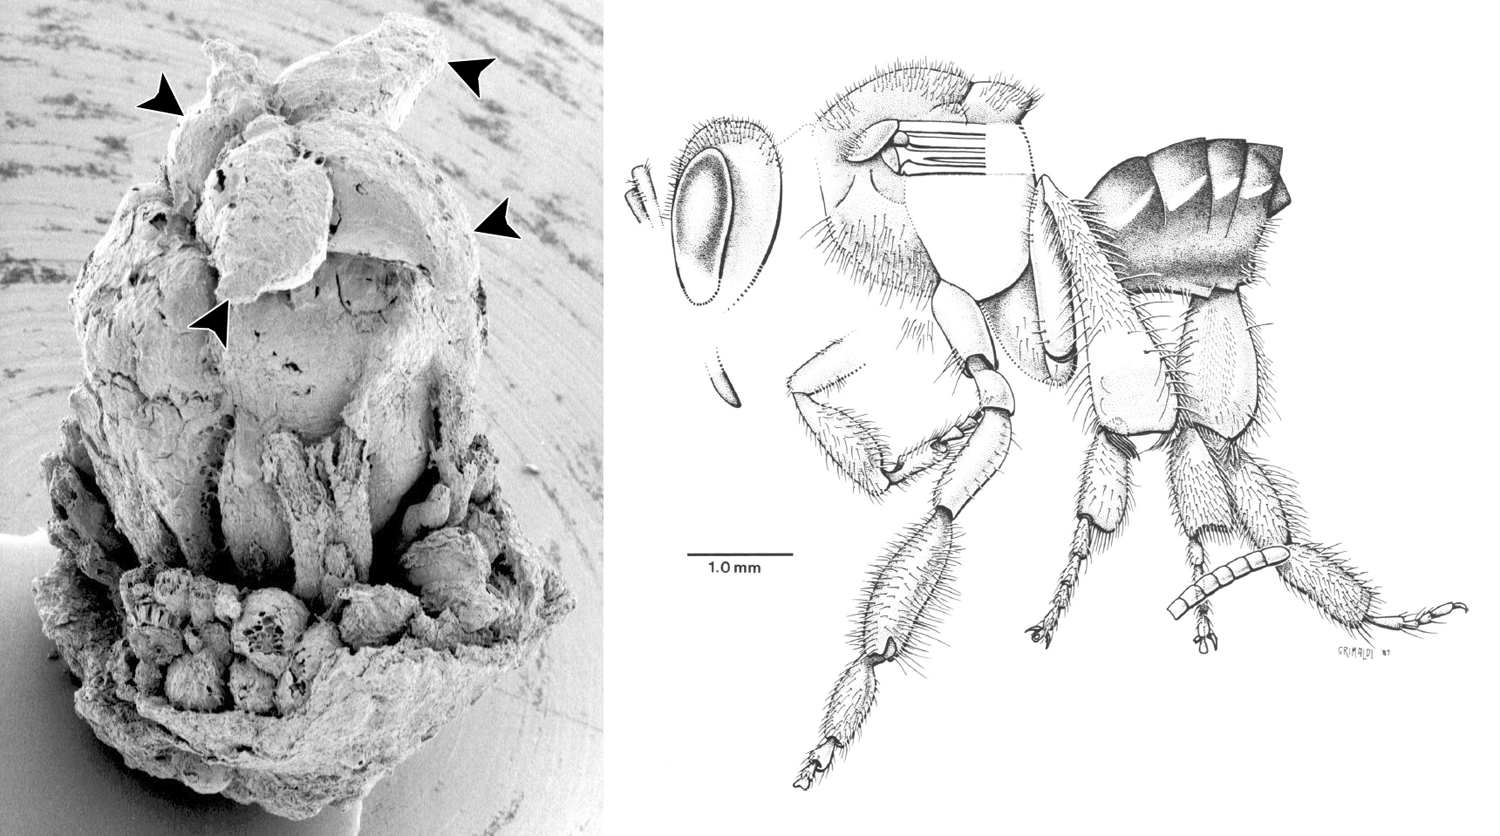 2-Panel figure. Panel 1: Fossil flower of Paleoclusia. Panel 2: Drawing of a fossil stingless bee.